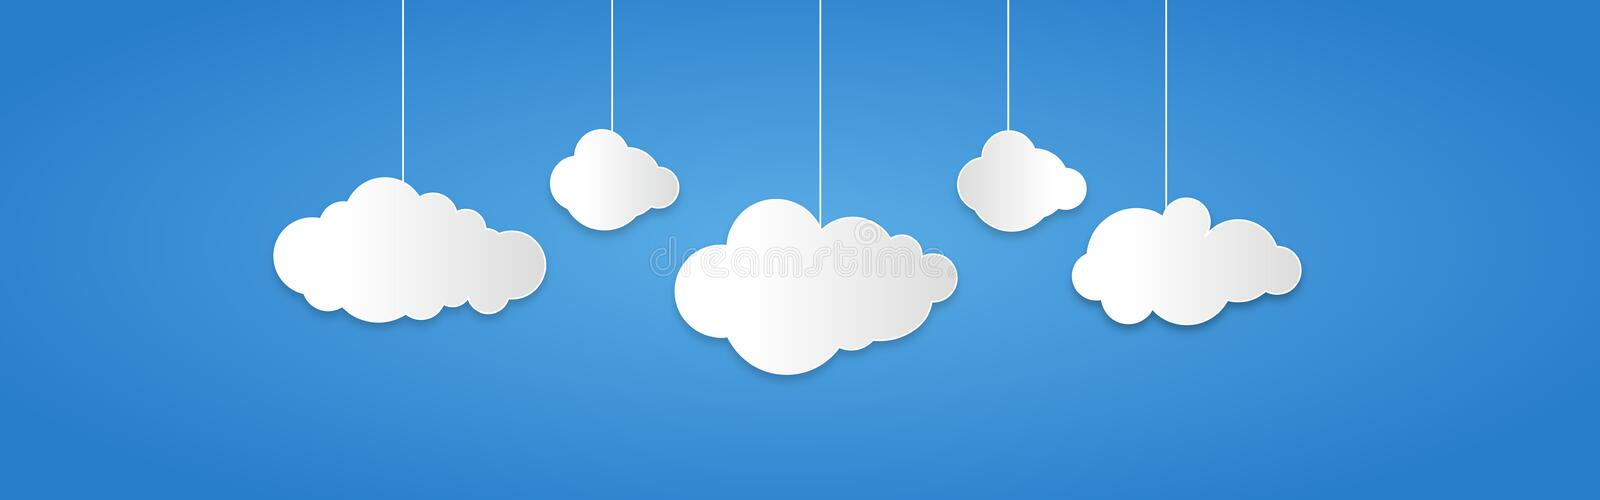 Background composed of white paper clouds over blue. vector illustration. Abstract background composed of white paper clouds over blue. vector illustration royalty free illustration